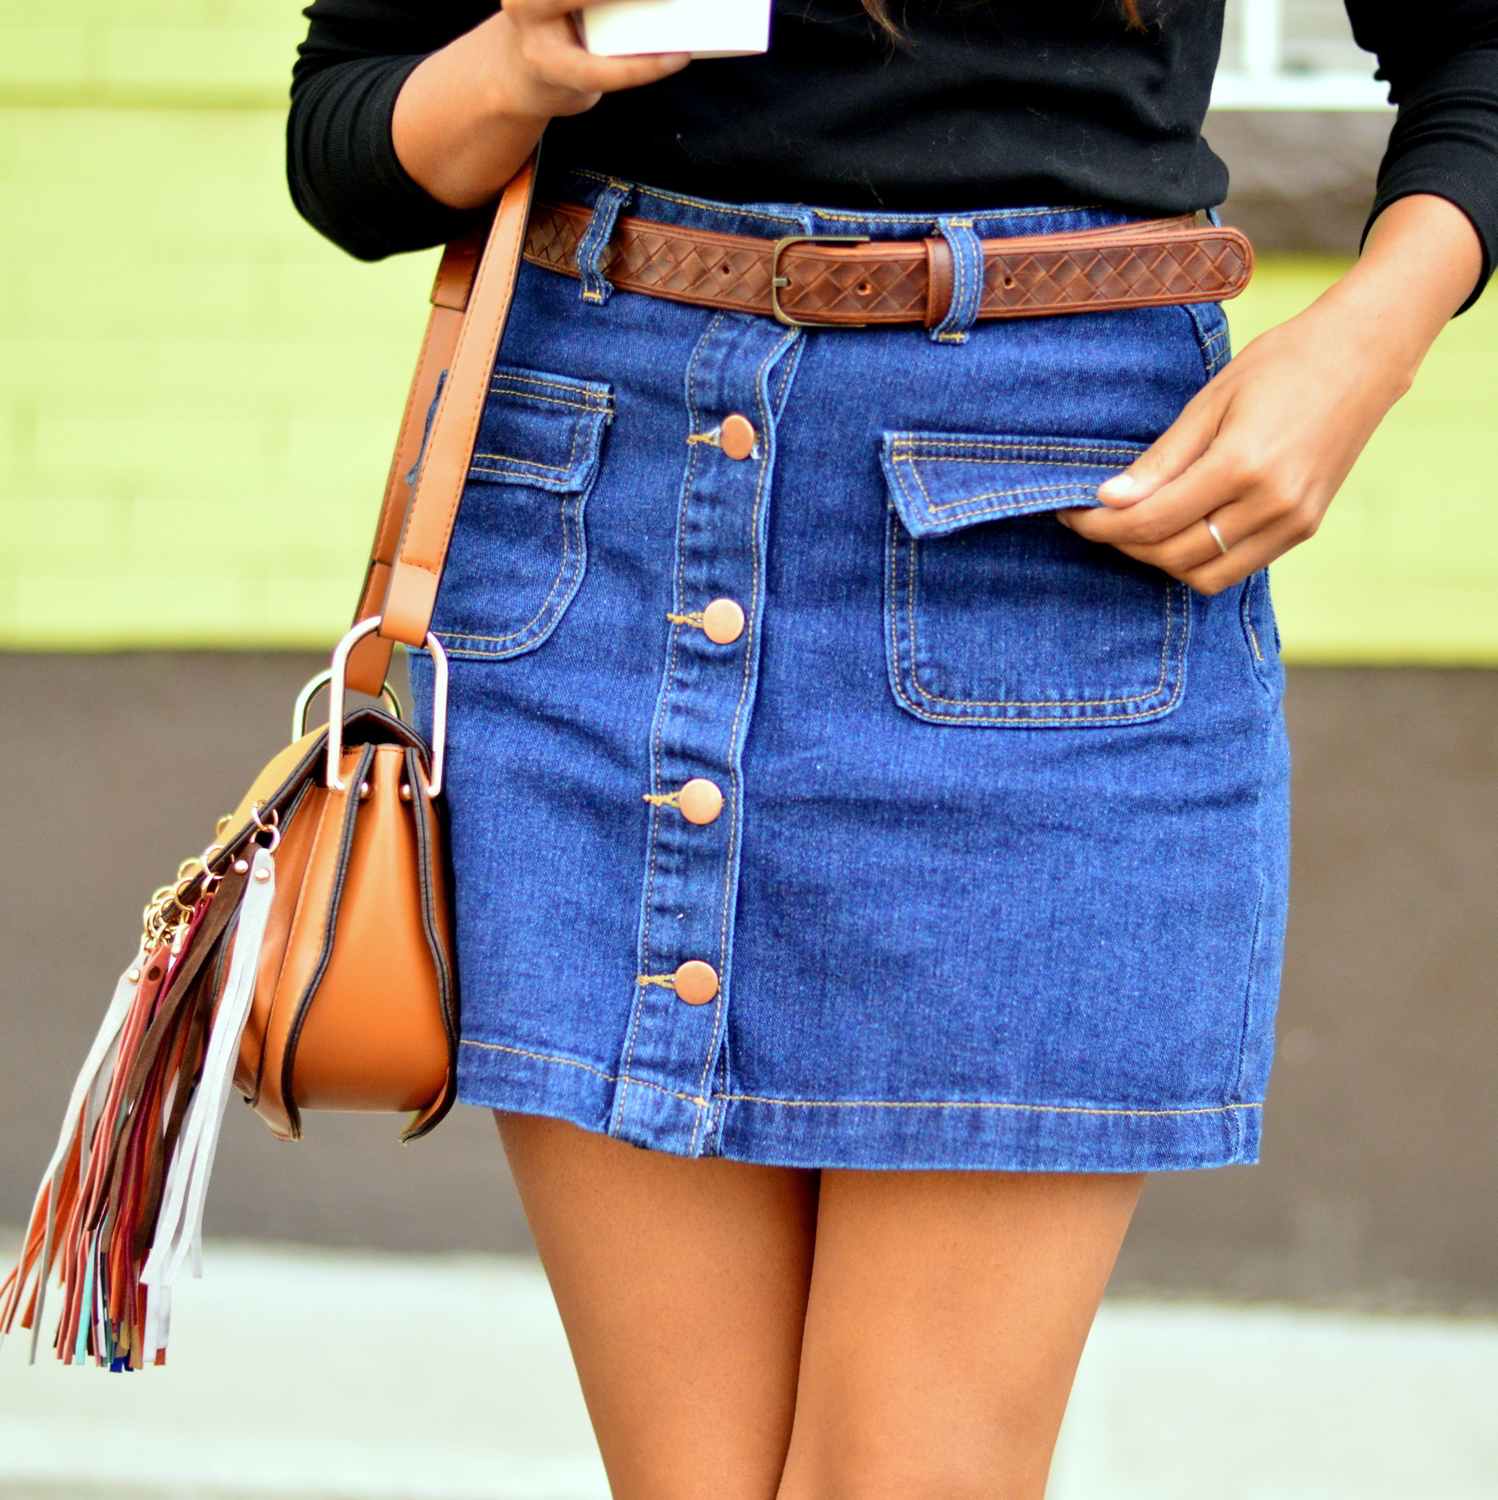 denim-skirt-off-the-shoulder-fringe-boho-casual-fall-style 5